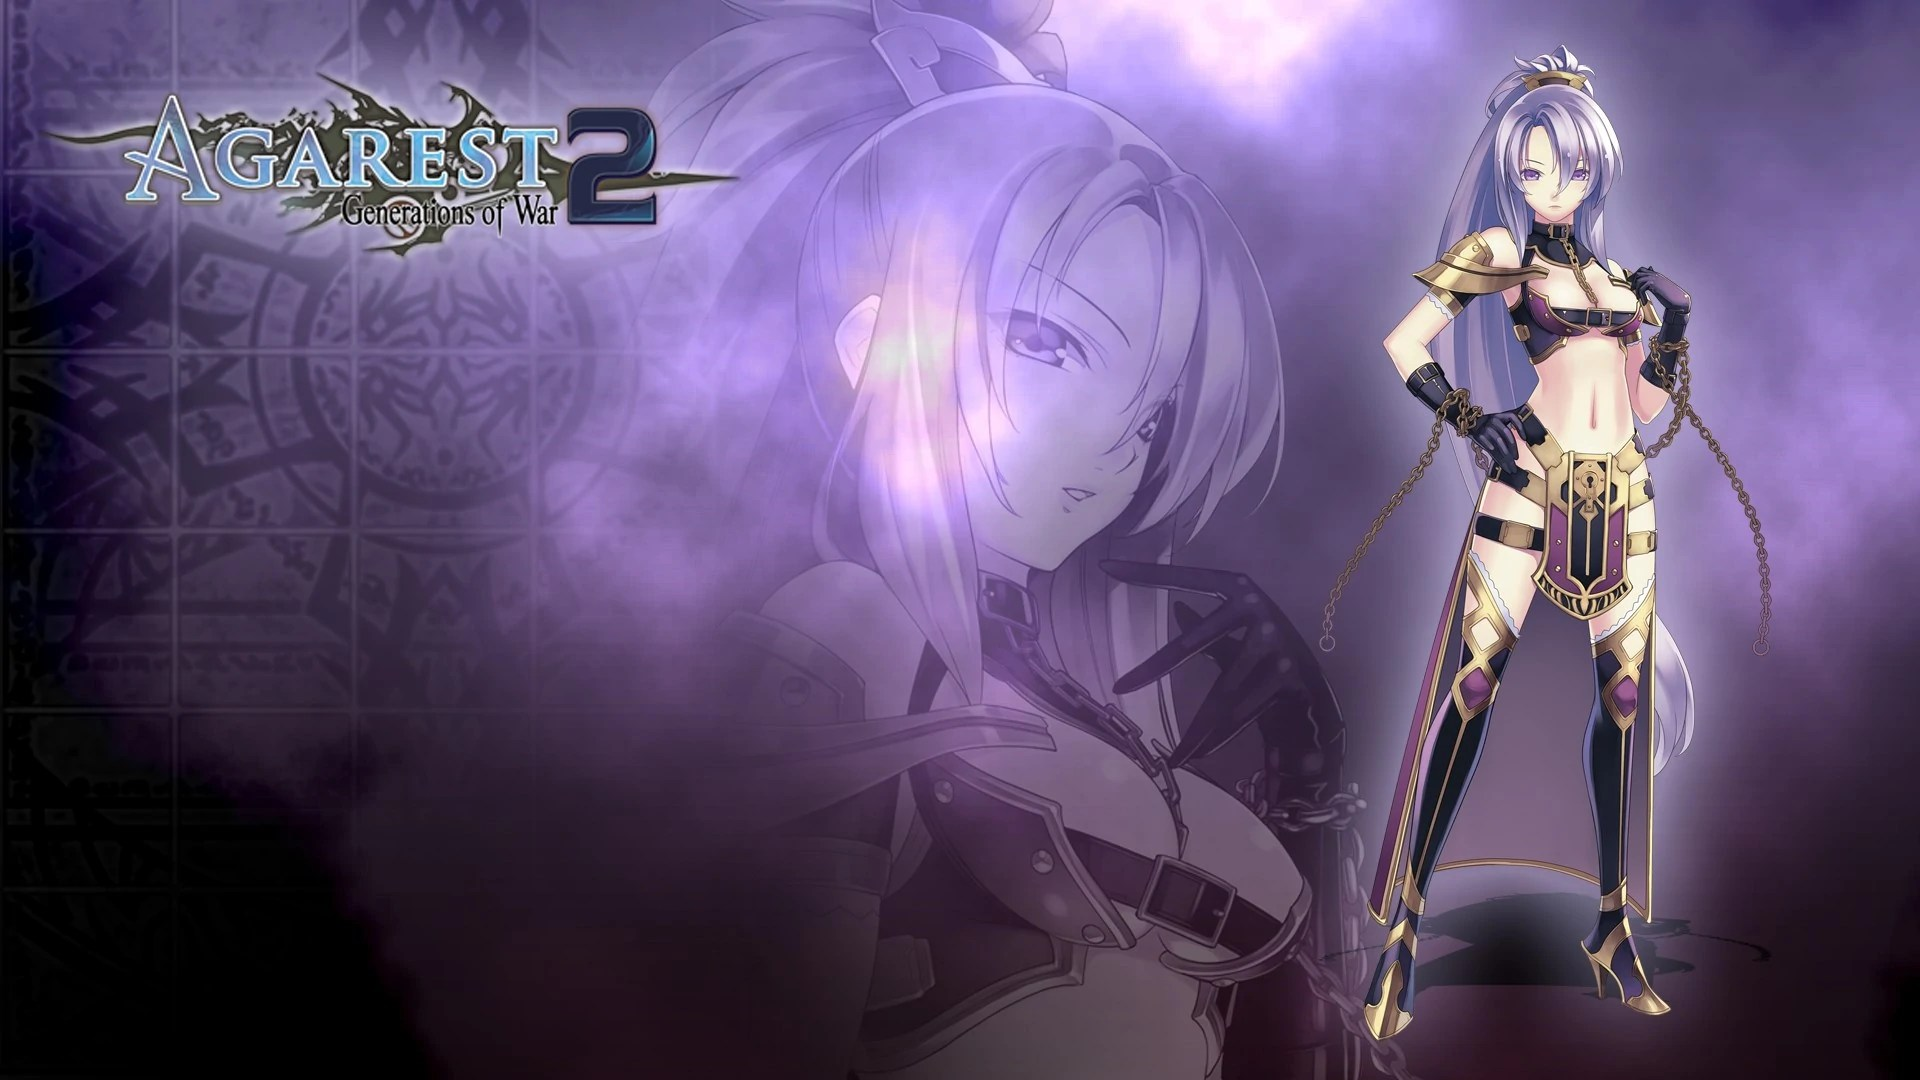 Anime Goth Girl Wallpaper Agarest Generations Of War 2 Eva Steam Trading Cards